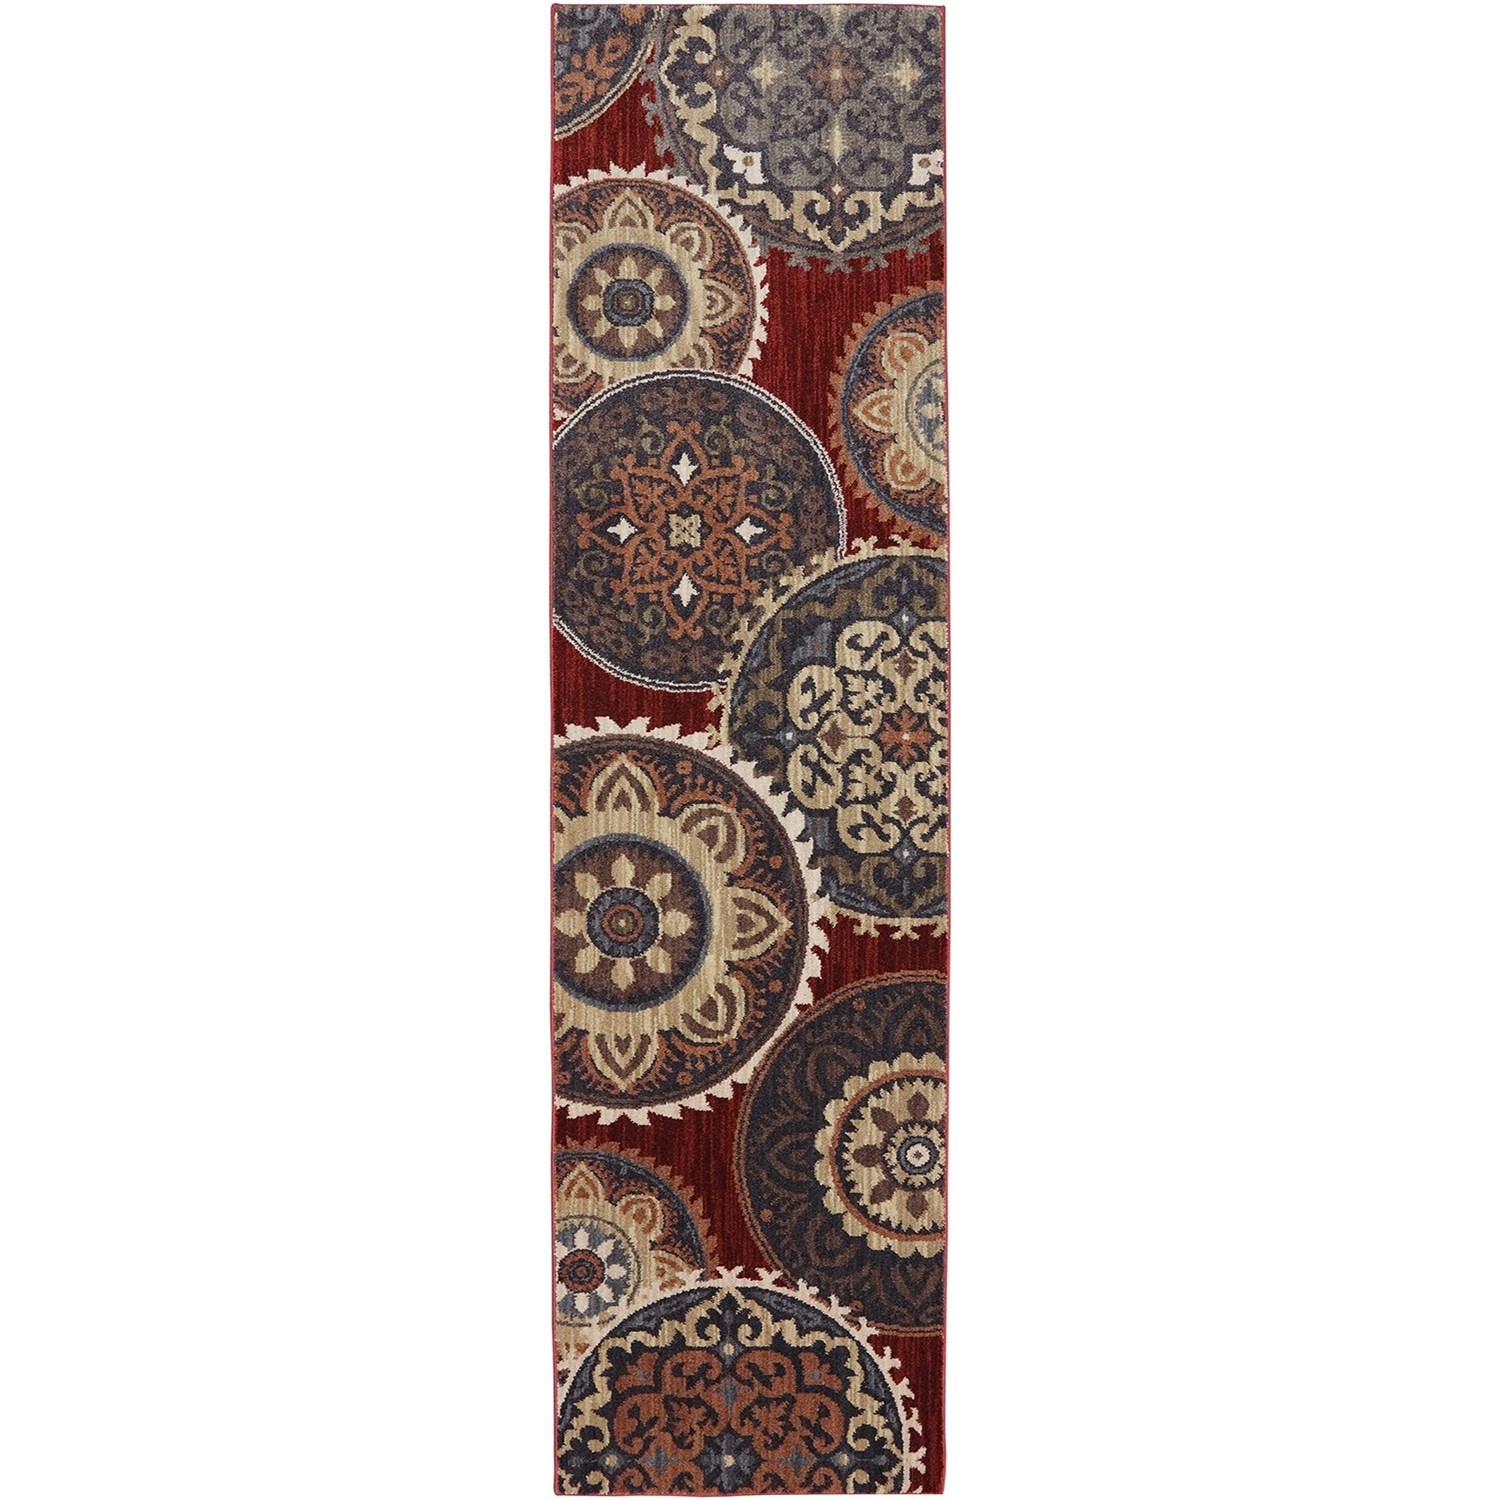 """Dryden 2' 1""""x7' 10"""" Summit View Ashen Area Rug by American Rug Craftsmen at Alison Craig Home Furnishings"""